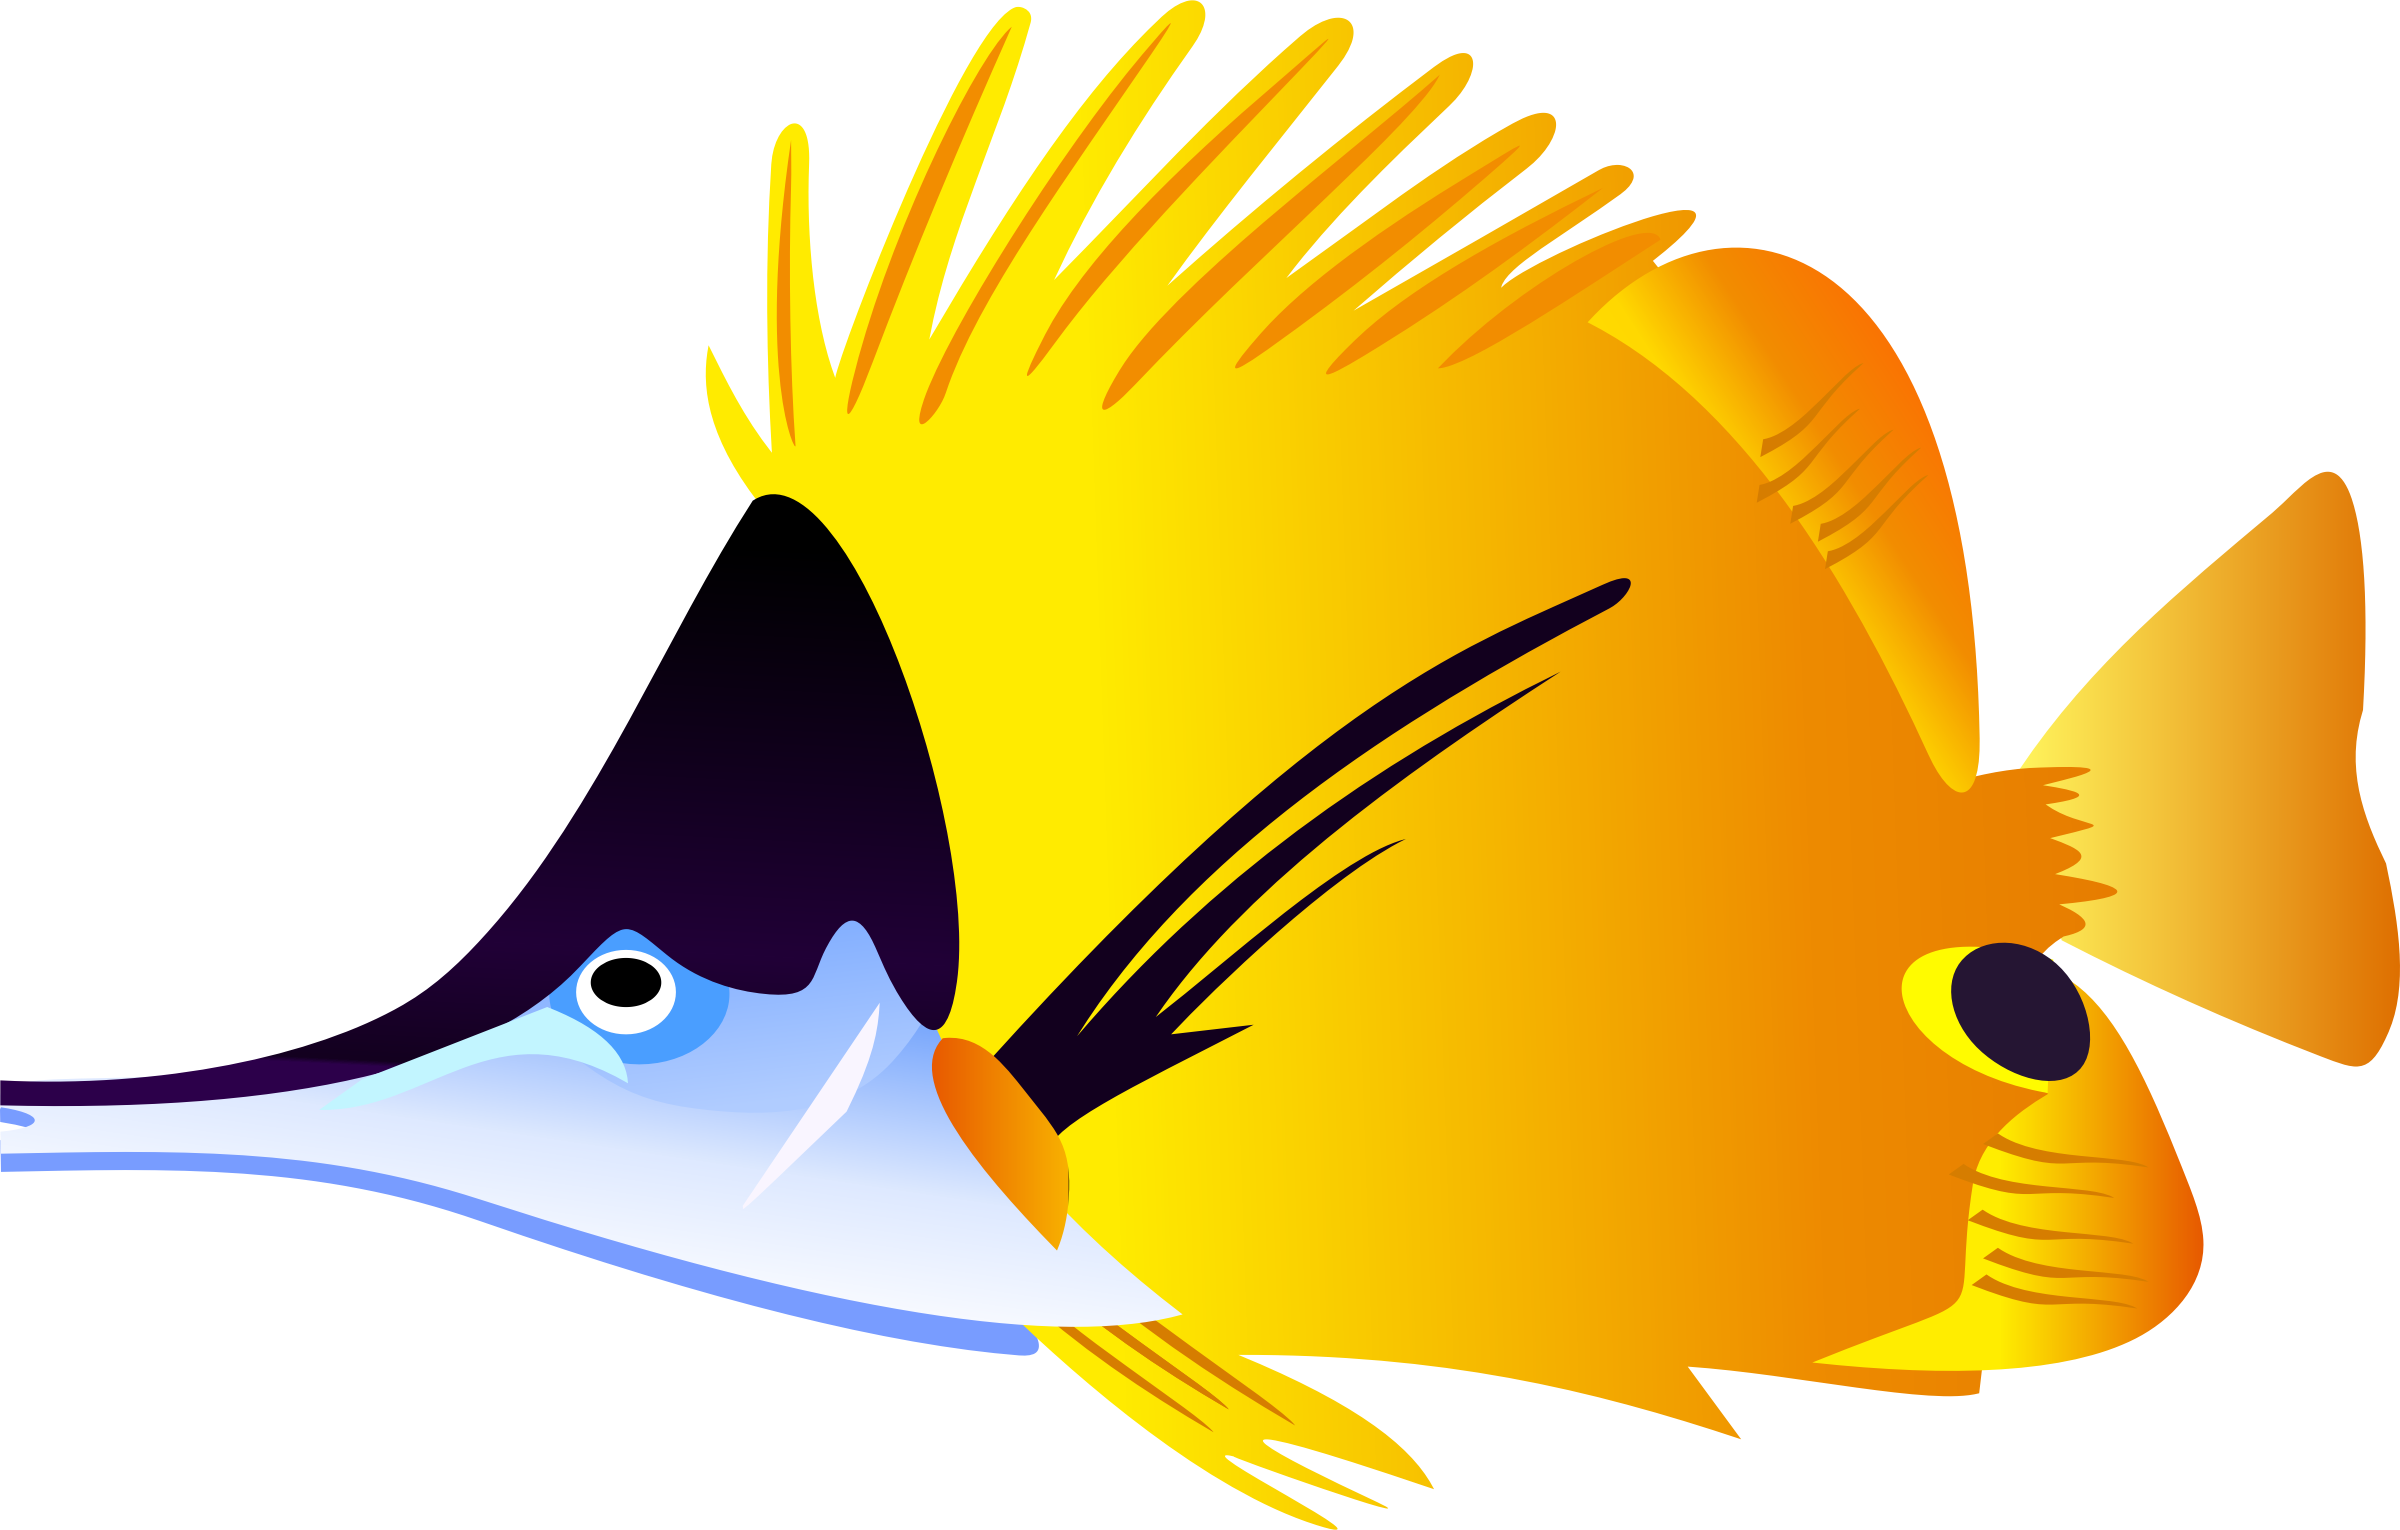 Angel fish clipart image library stock Saltwater Fish Clipart at GetDrawings.com | Free for personal use ... image library stock